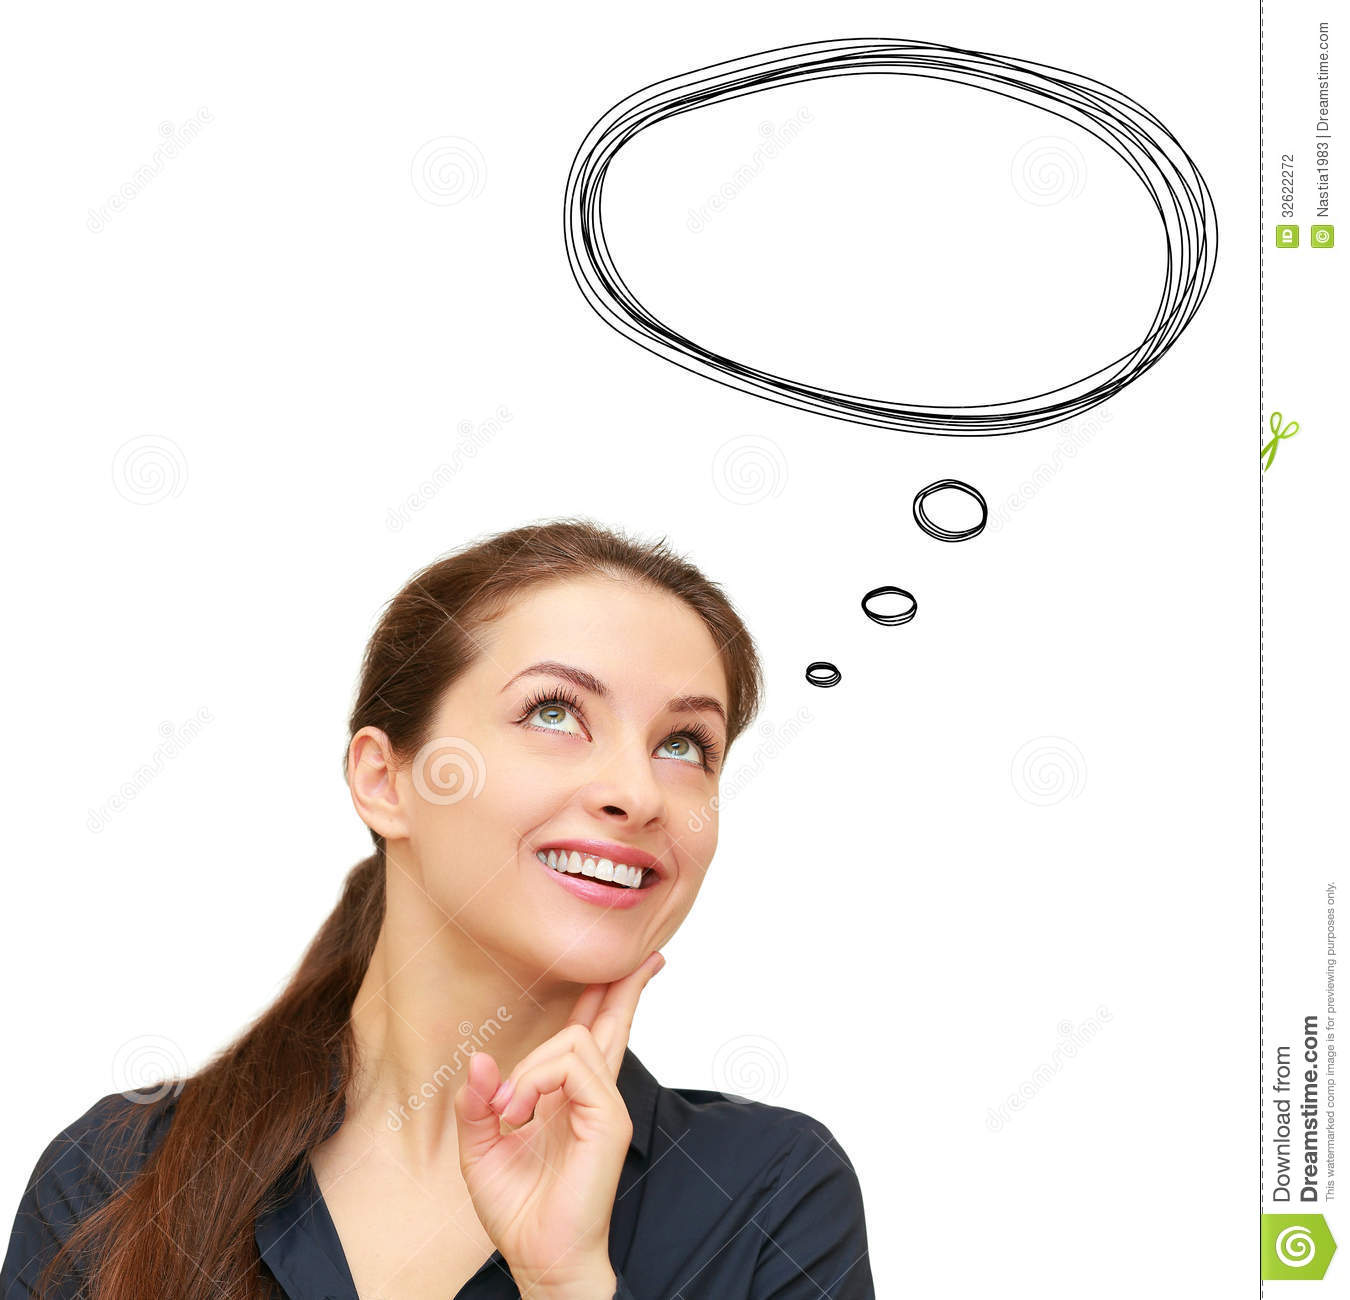 Thinking Woman With Bubble Speech Stock Photography - Image: 32622272